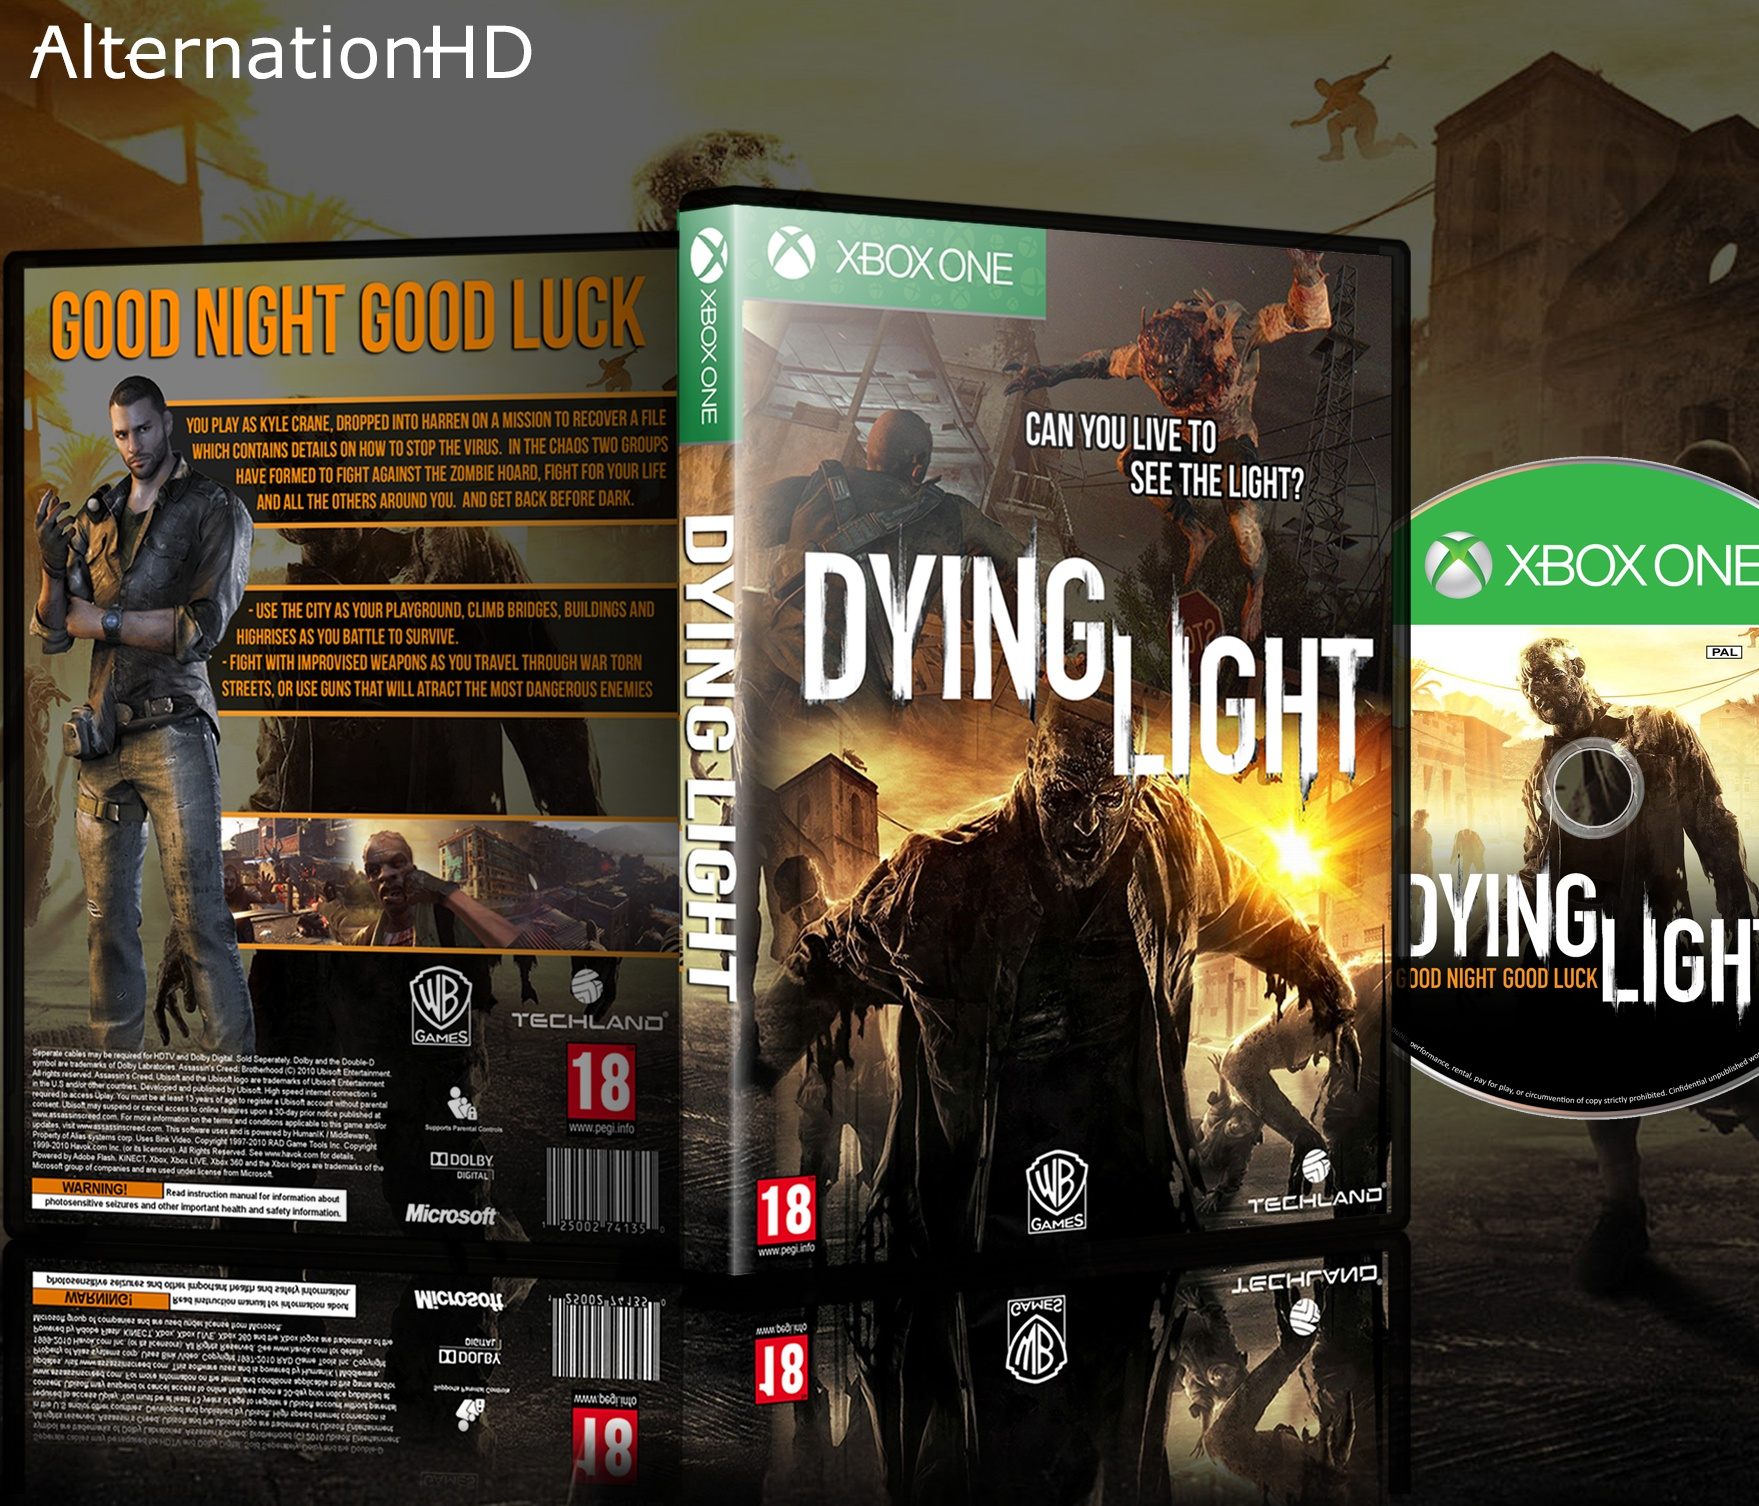 dying light xbox one box art cover by alternationhd